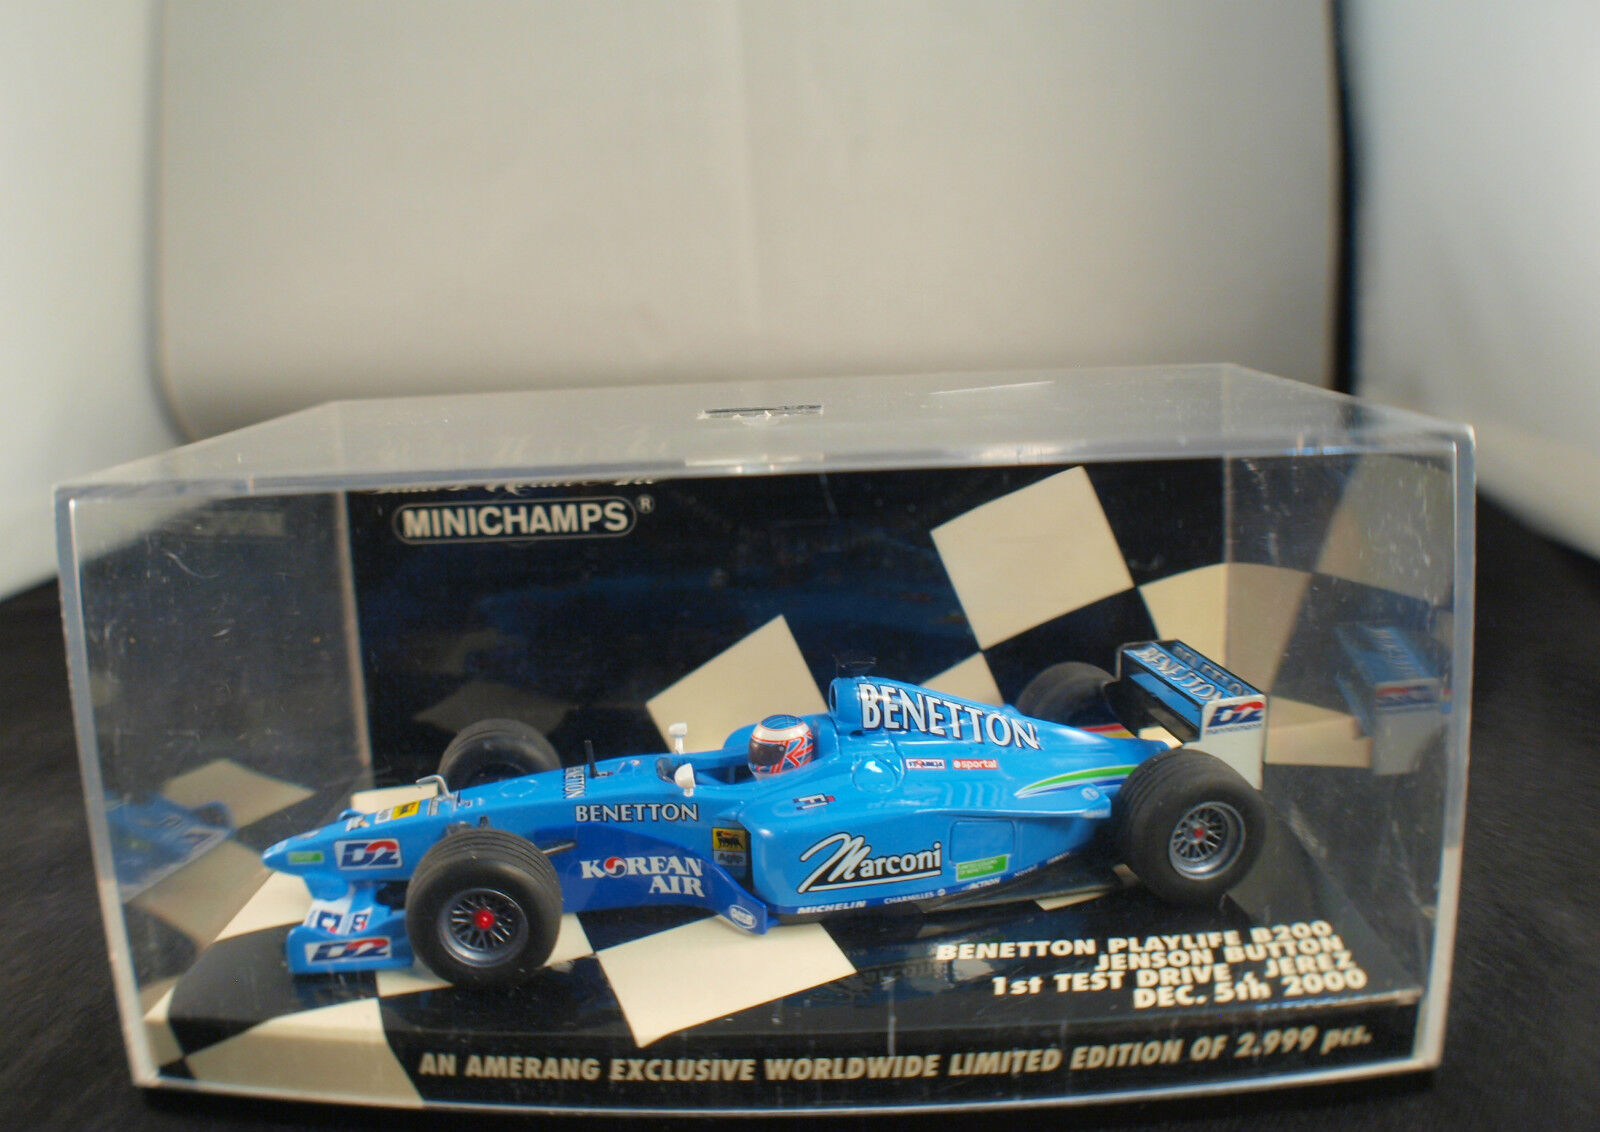 Minichamps Benetton Playlife B200 Button 1st test Jerez neuf 1 43 MIB rare